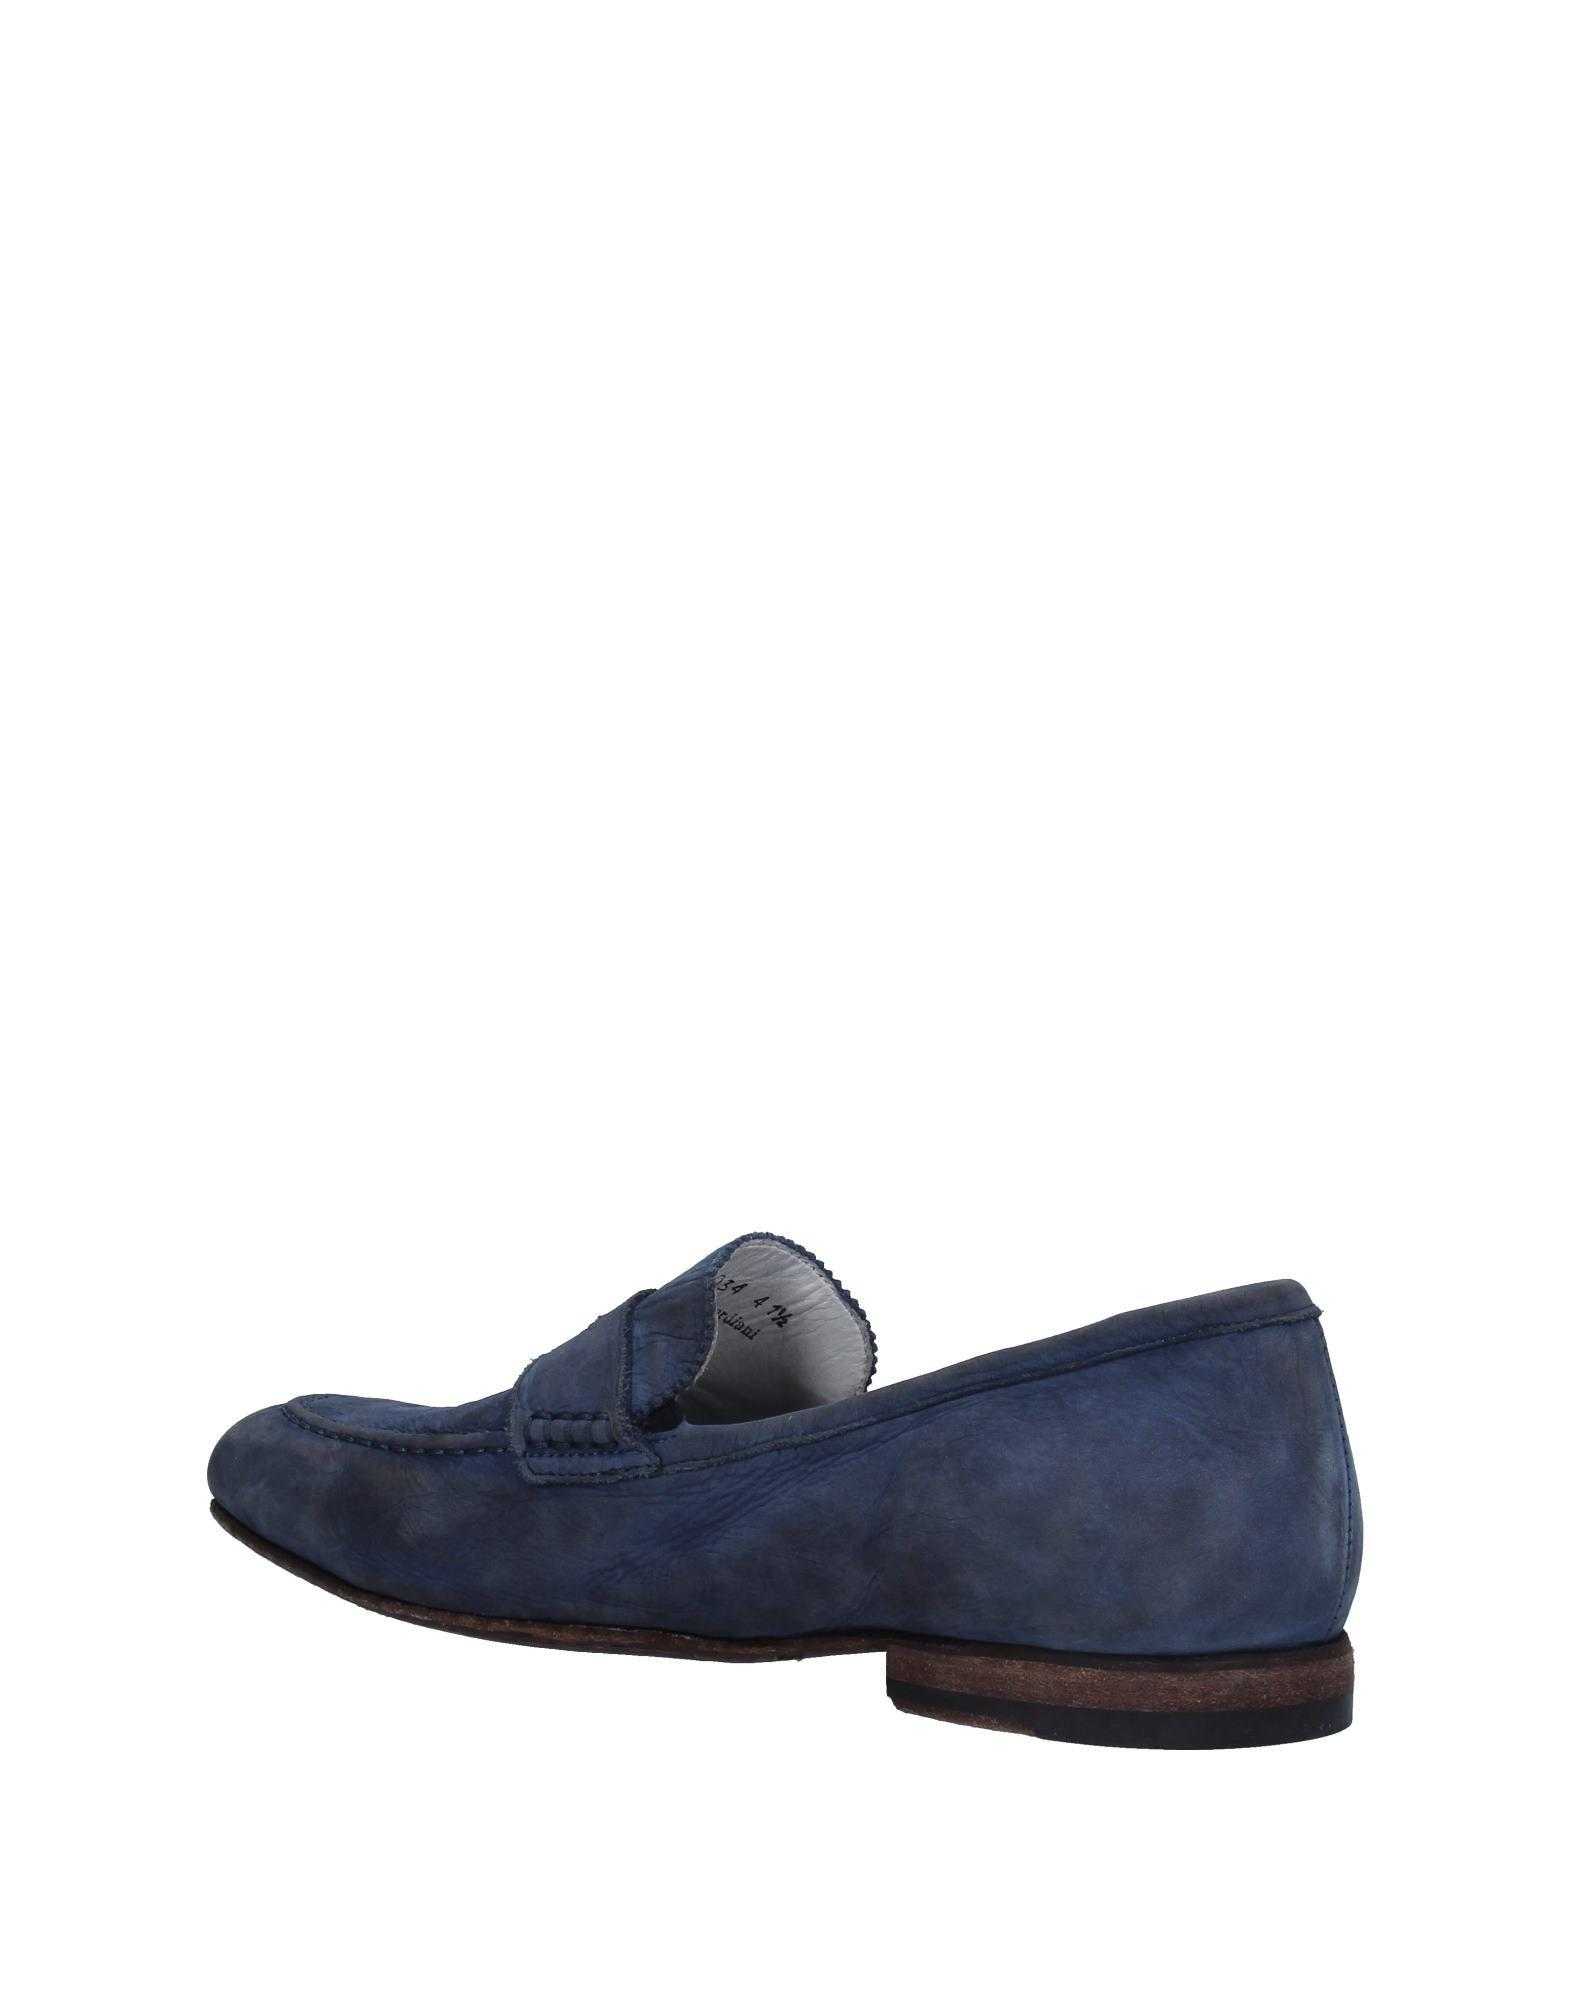 Alberto Guardiani Leather Loafer in Slate Blue (Blue) for Men